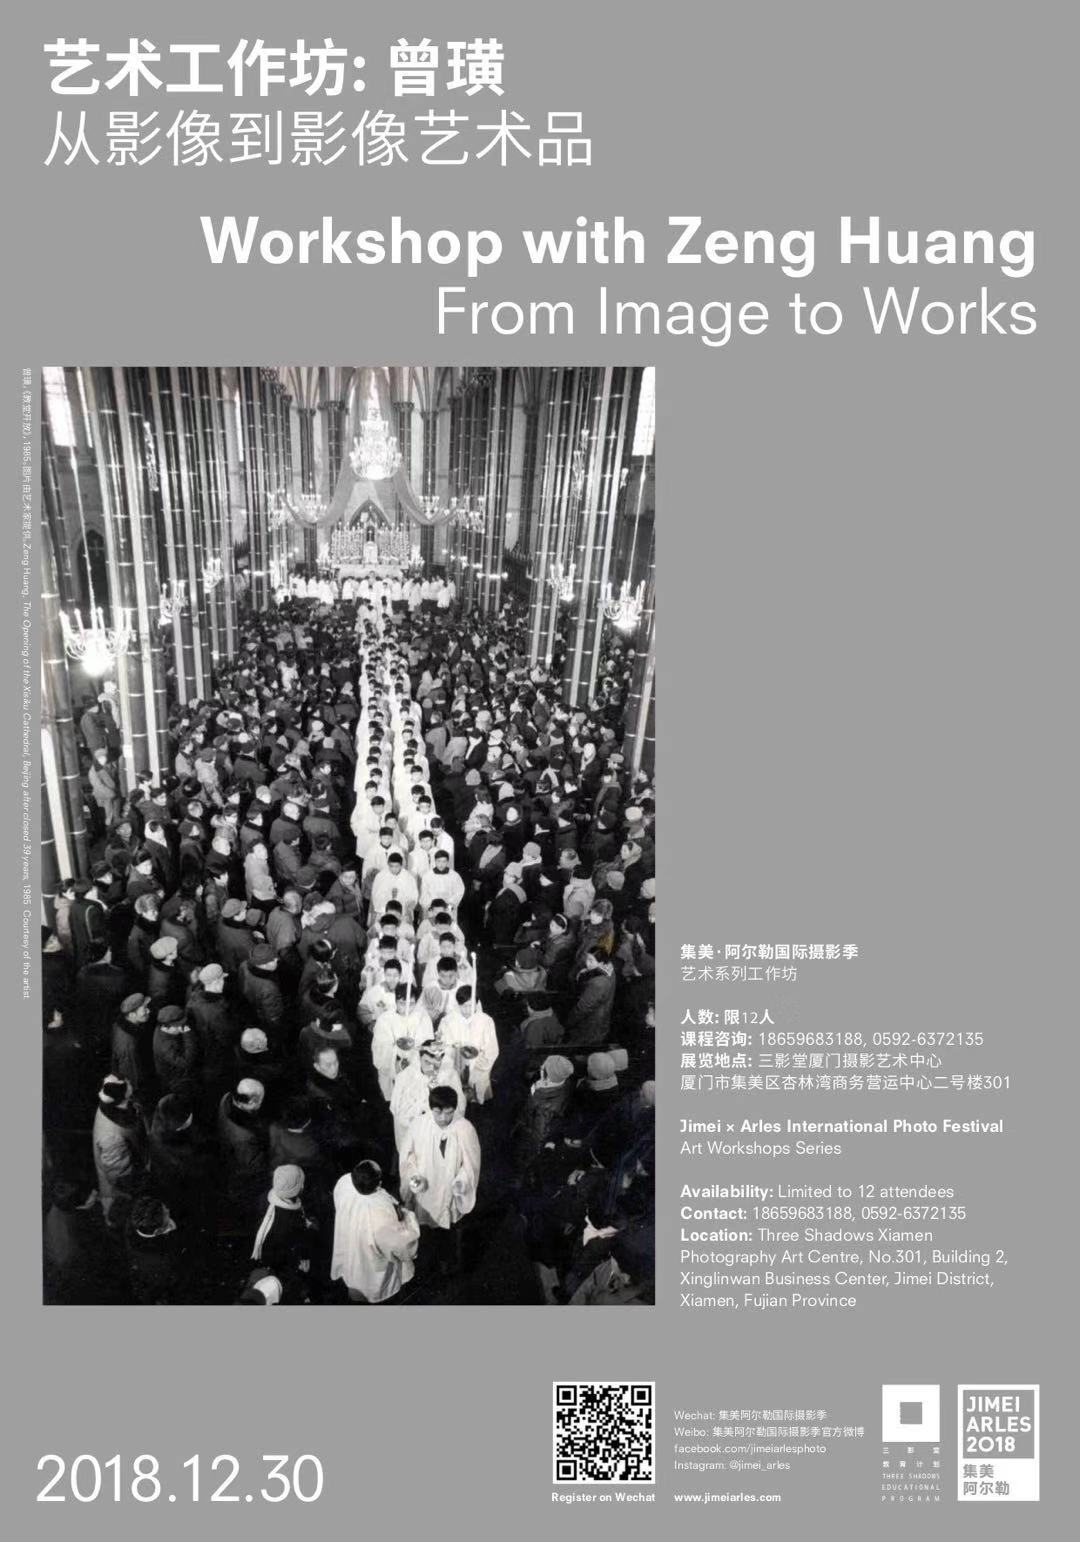 JIMEIARLES_Workshop Poster_Digital_Zeng_Huang.jpeg